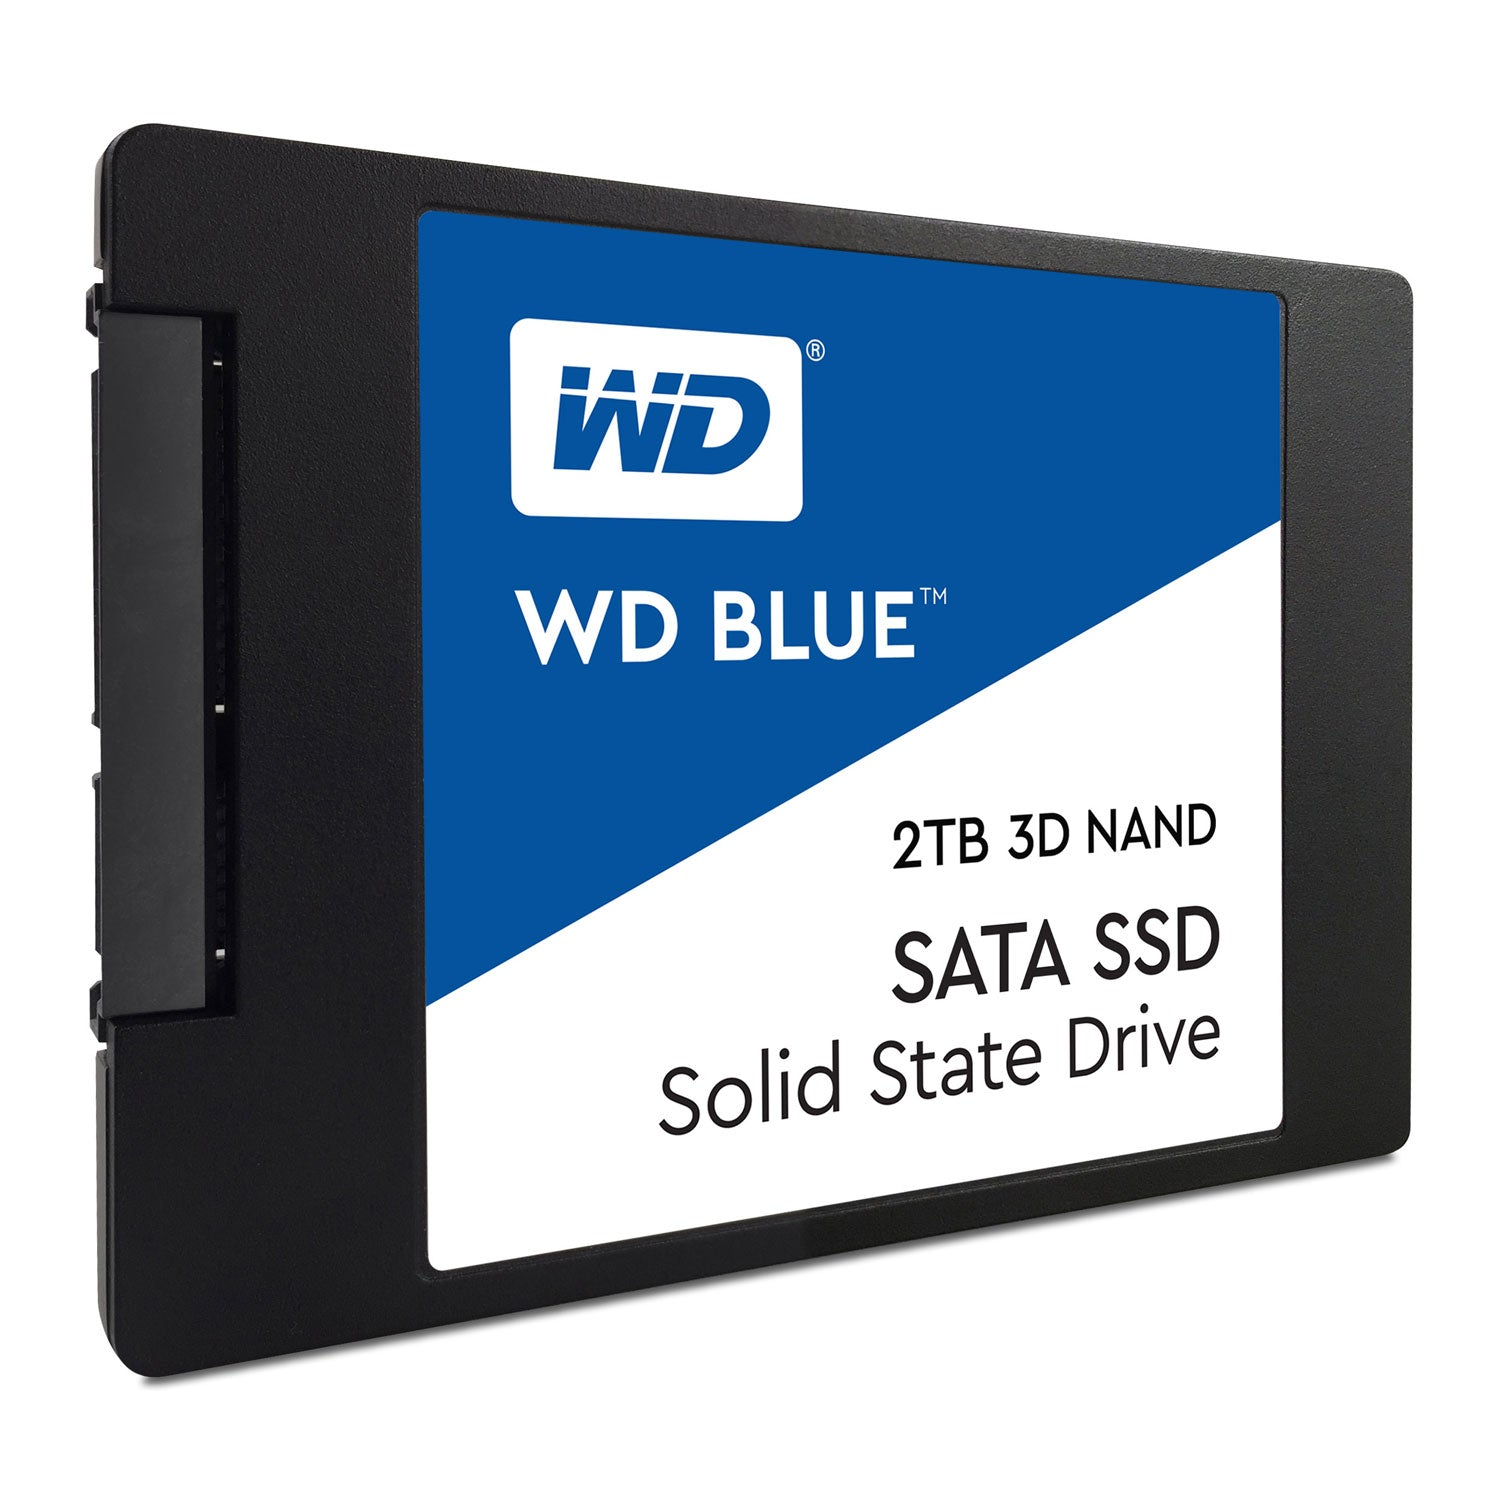 Wd Blue 3 D Nand Ssd, 2.5 Form Factor, Sata Interface, 2 Tb, Cssd Platform, 5 Yr Warranty